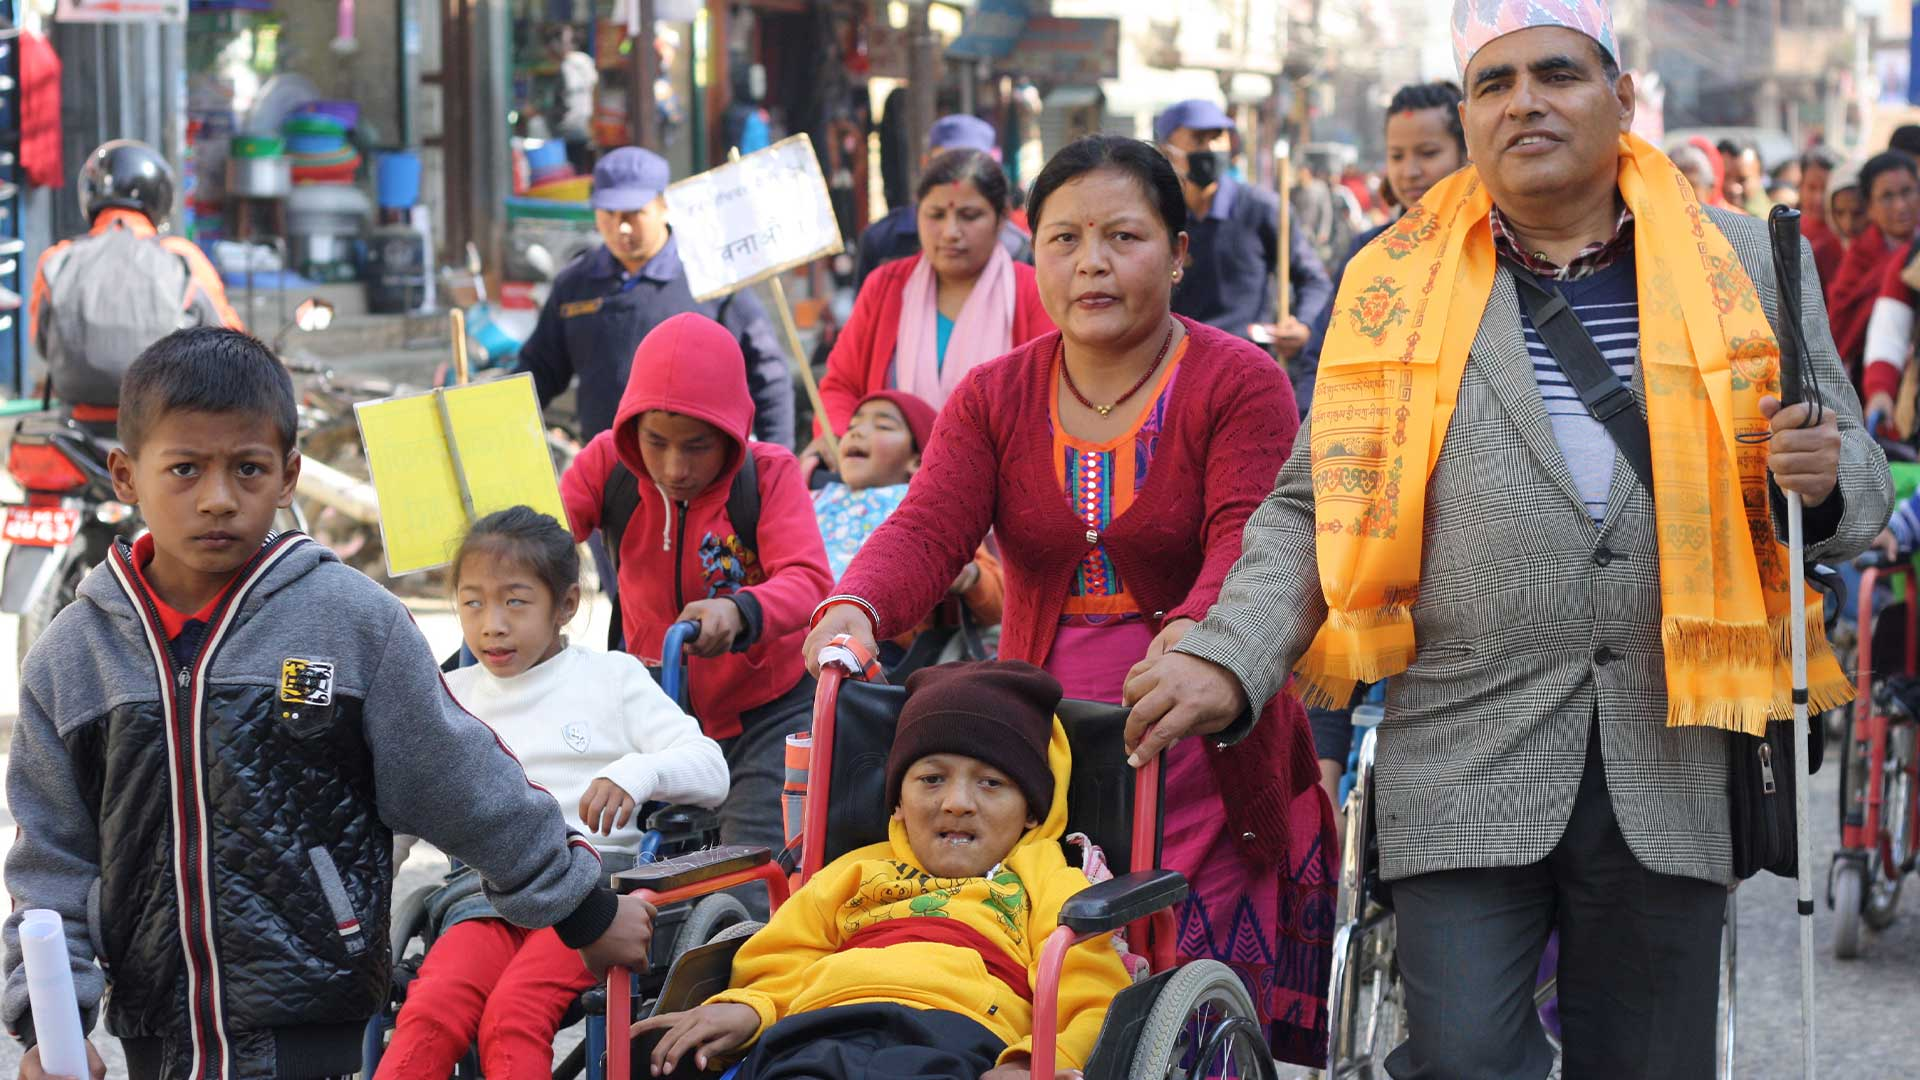 Carers and disabled adults and children as part of a parade in Nepal